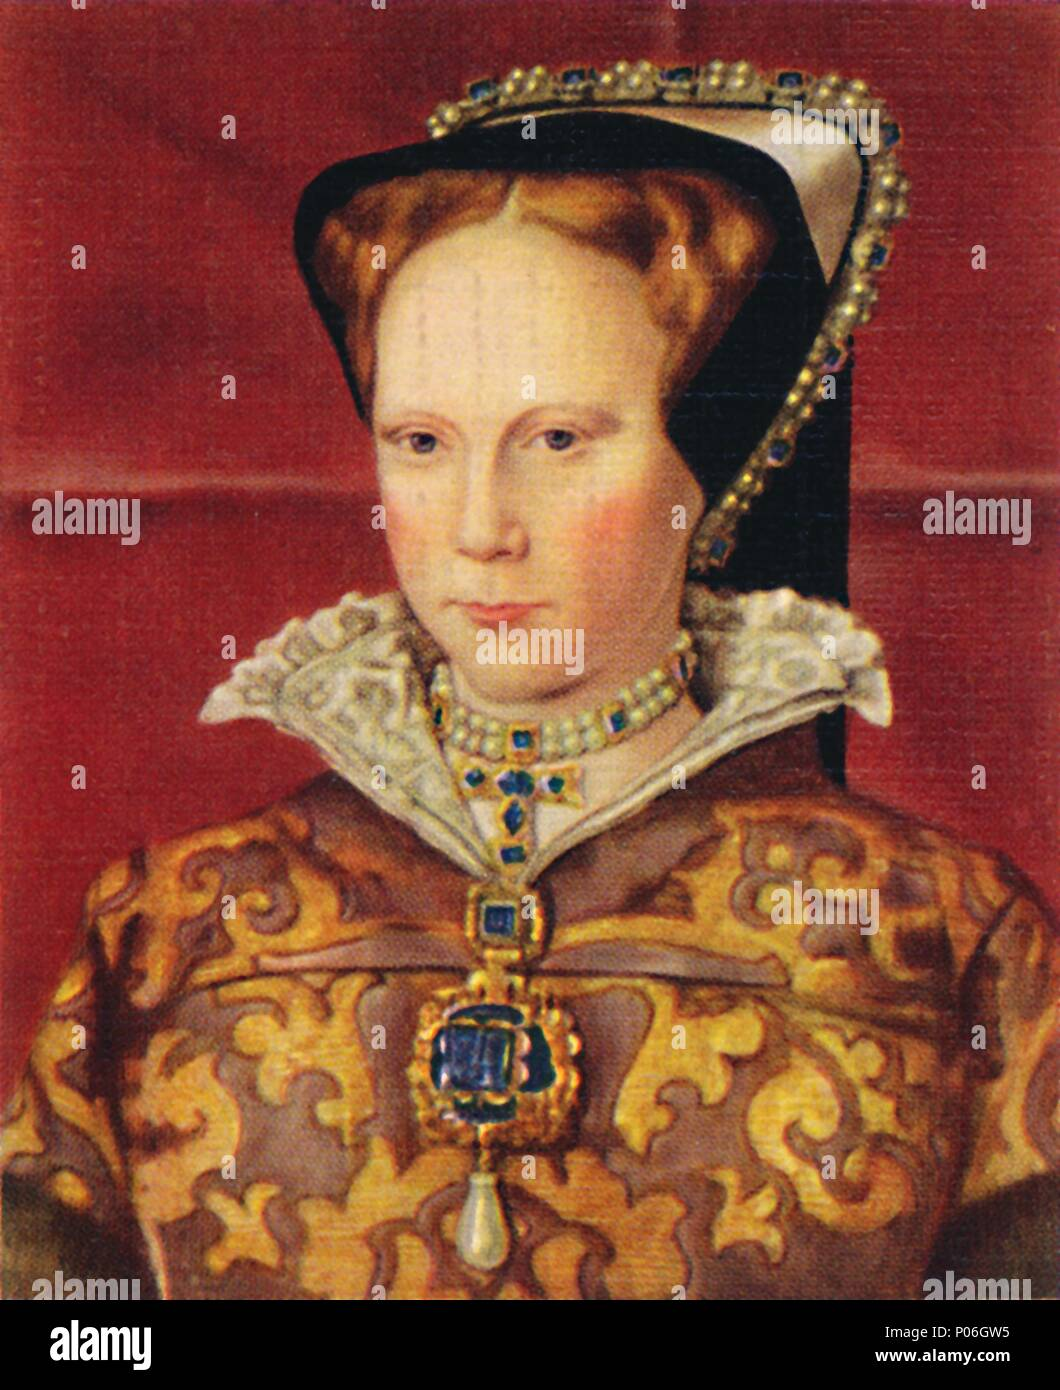 'Mary I', 1935.  Mary Tudor (1516-1558) was Queen of England and Queen of Ireland from 6 July 1553 (de jure) or 19 July 1553 (de facto) until her deat - Stock Image